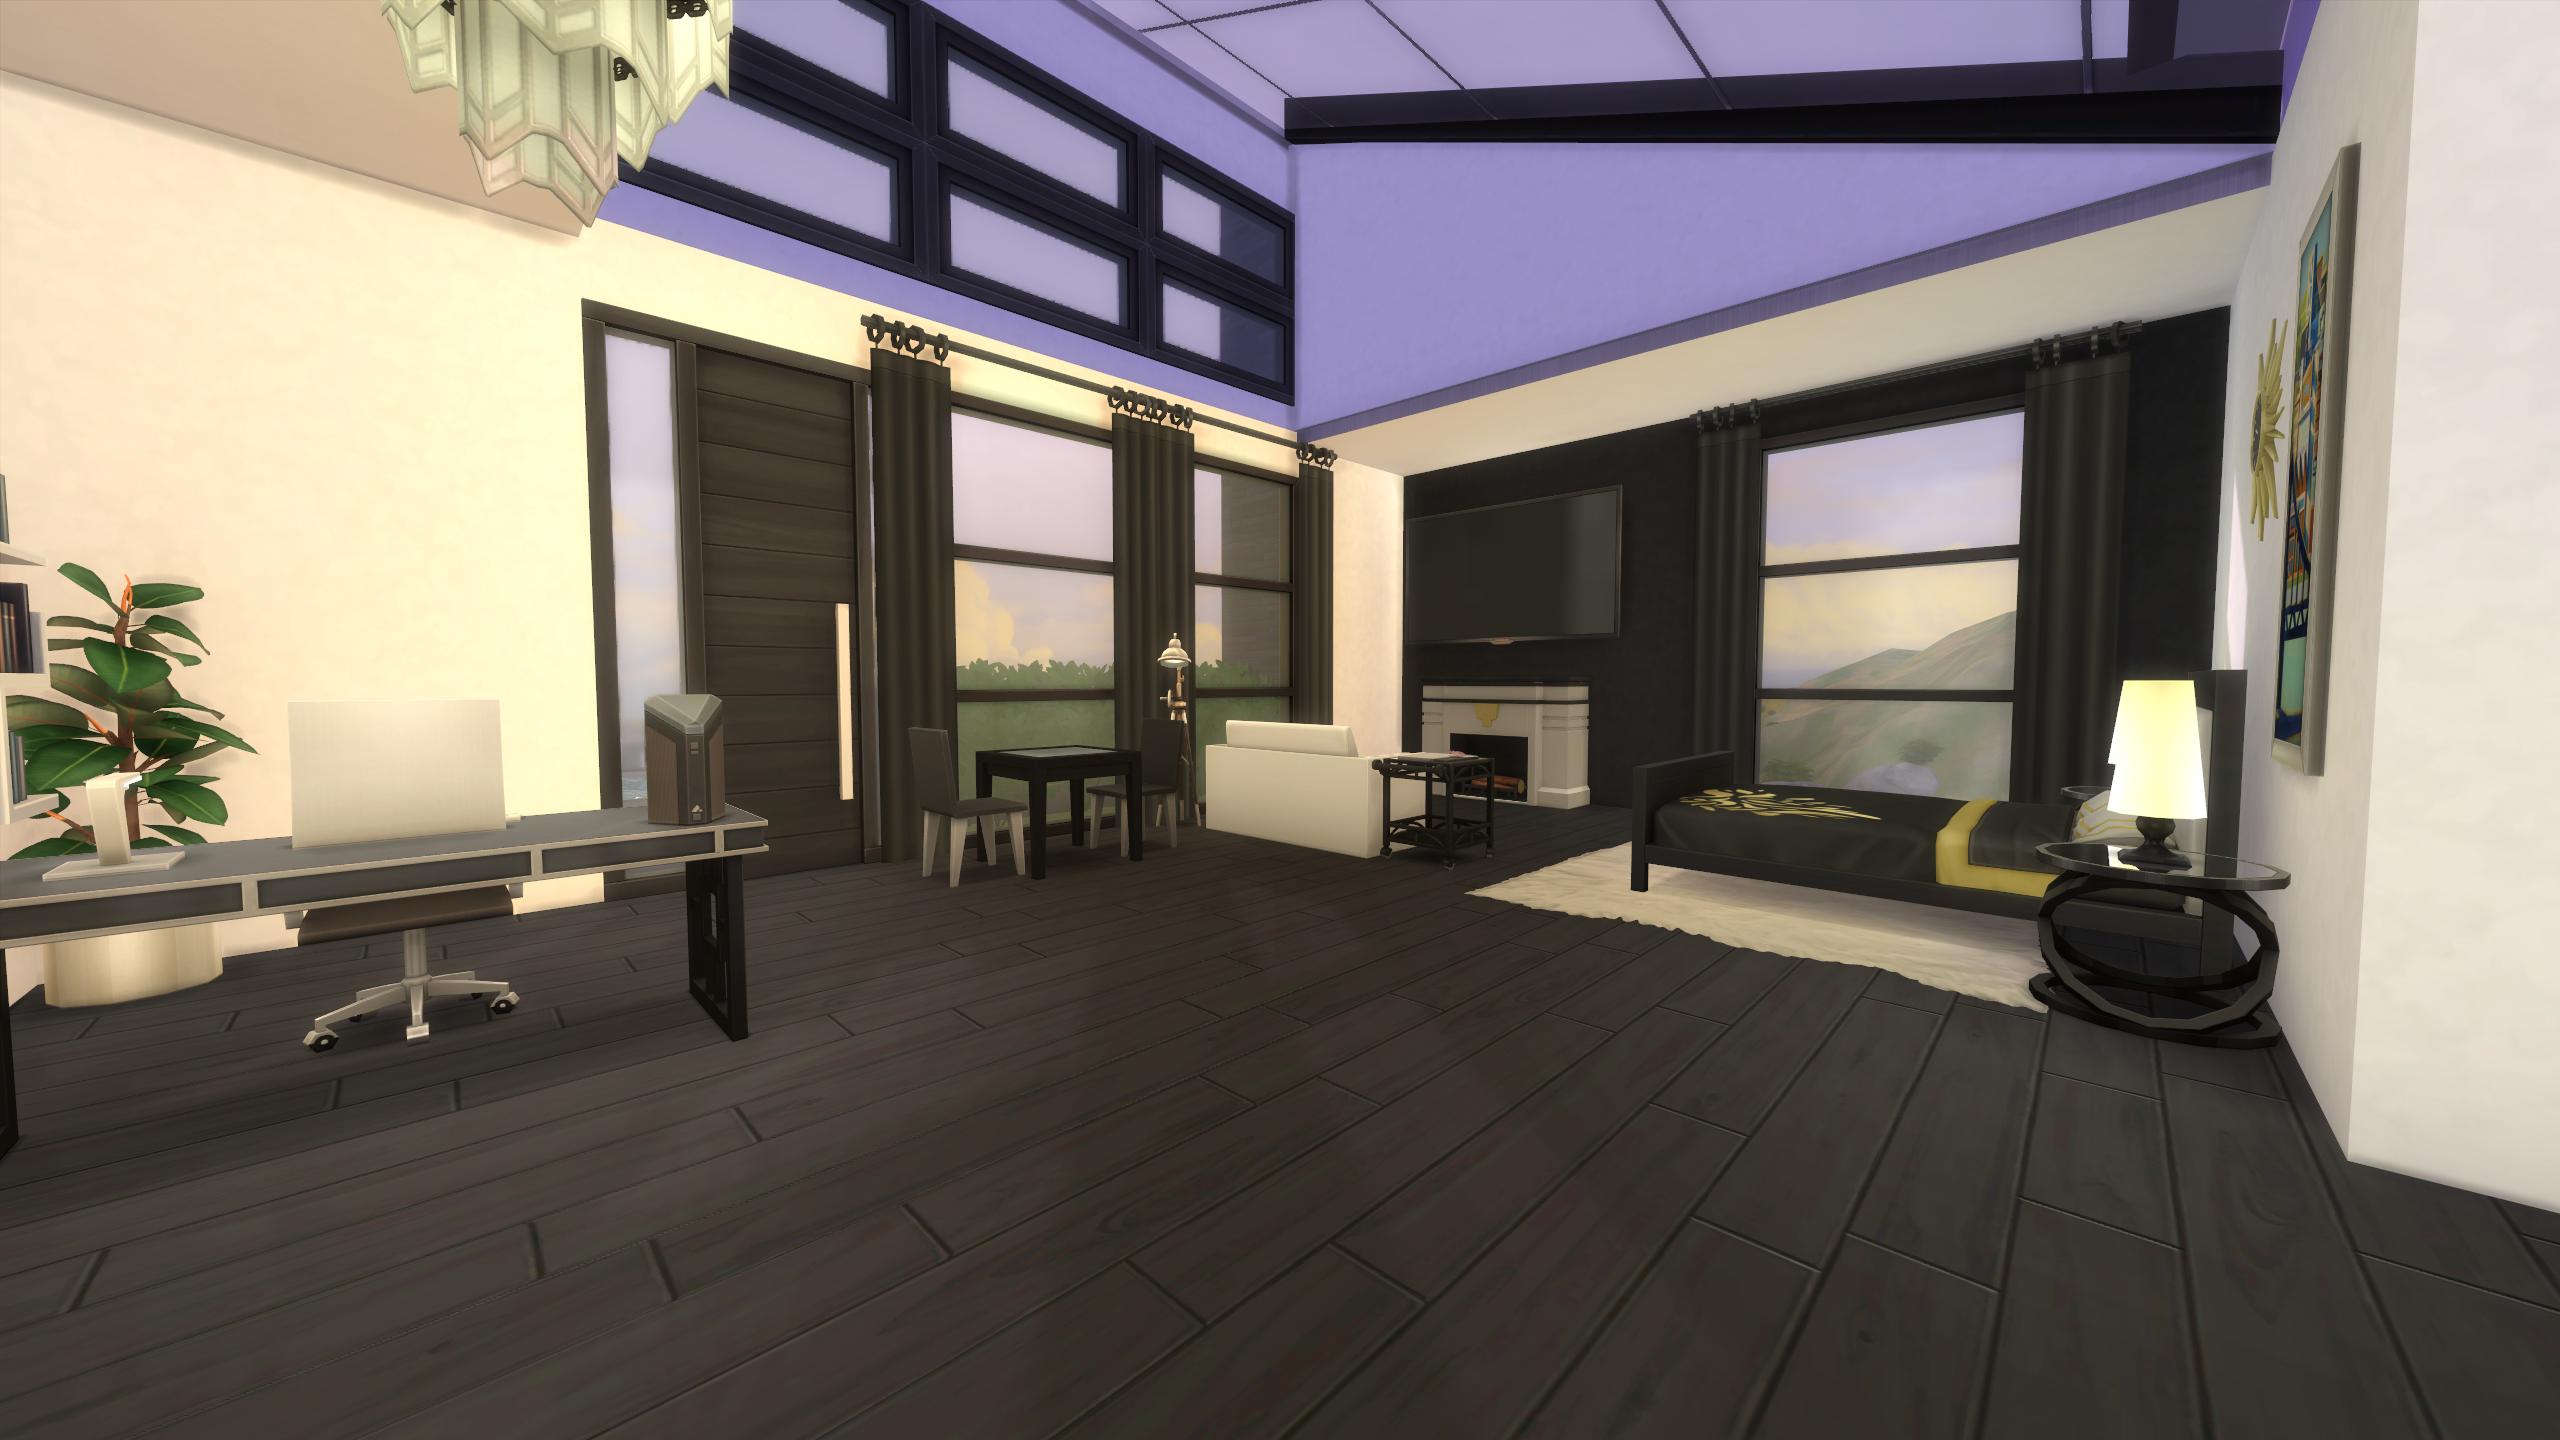 The Best Sims 4 Walk In Closet No Cc Pictures